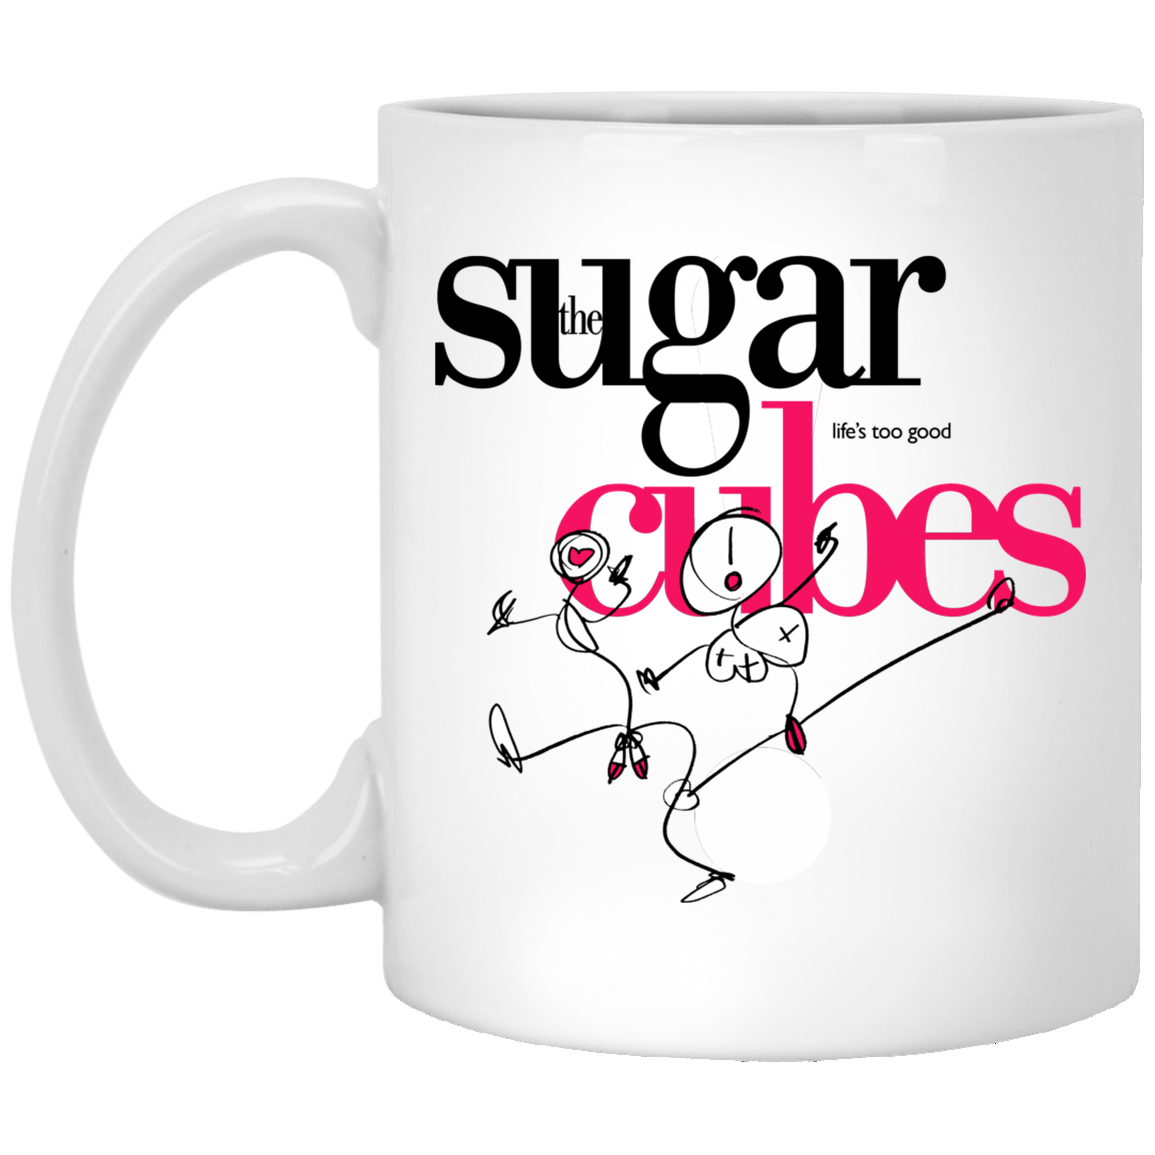 The Sugar Life's Too Good Cubes Mug 1005-9786-89726608-47417 - Tee Ript